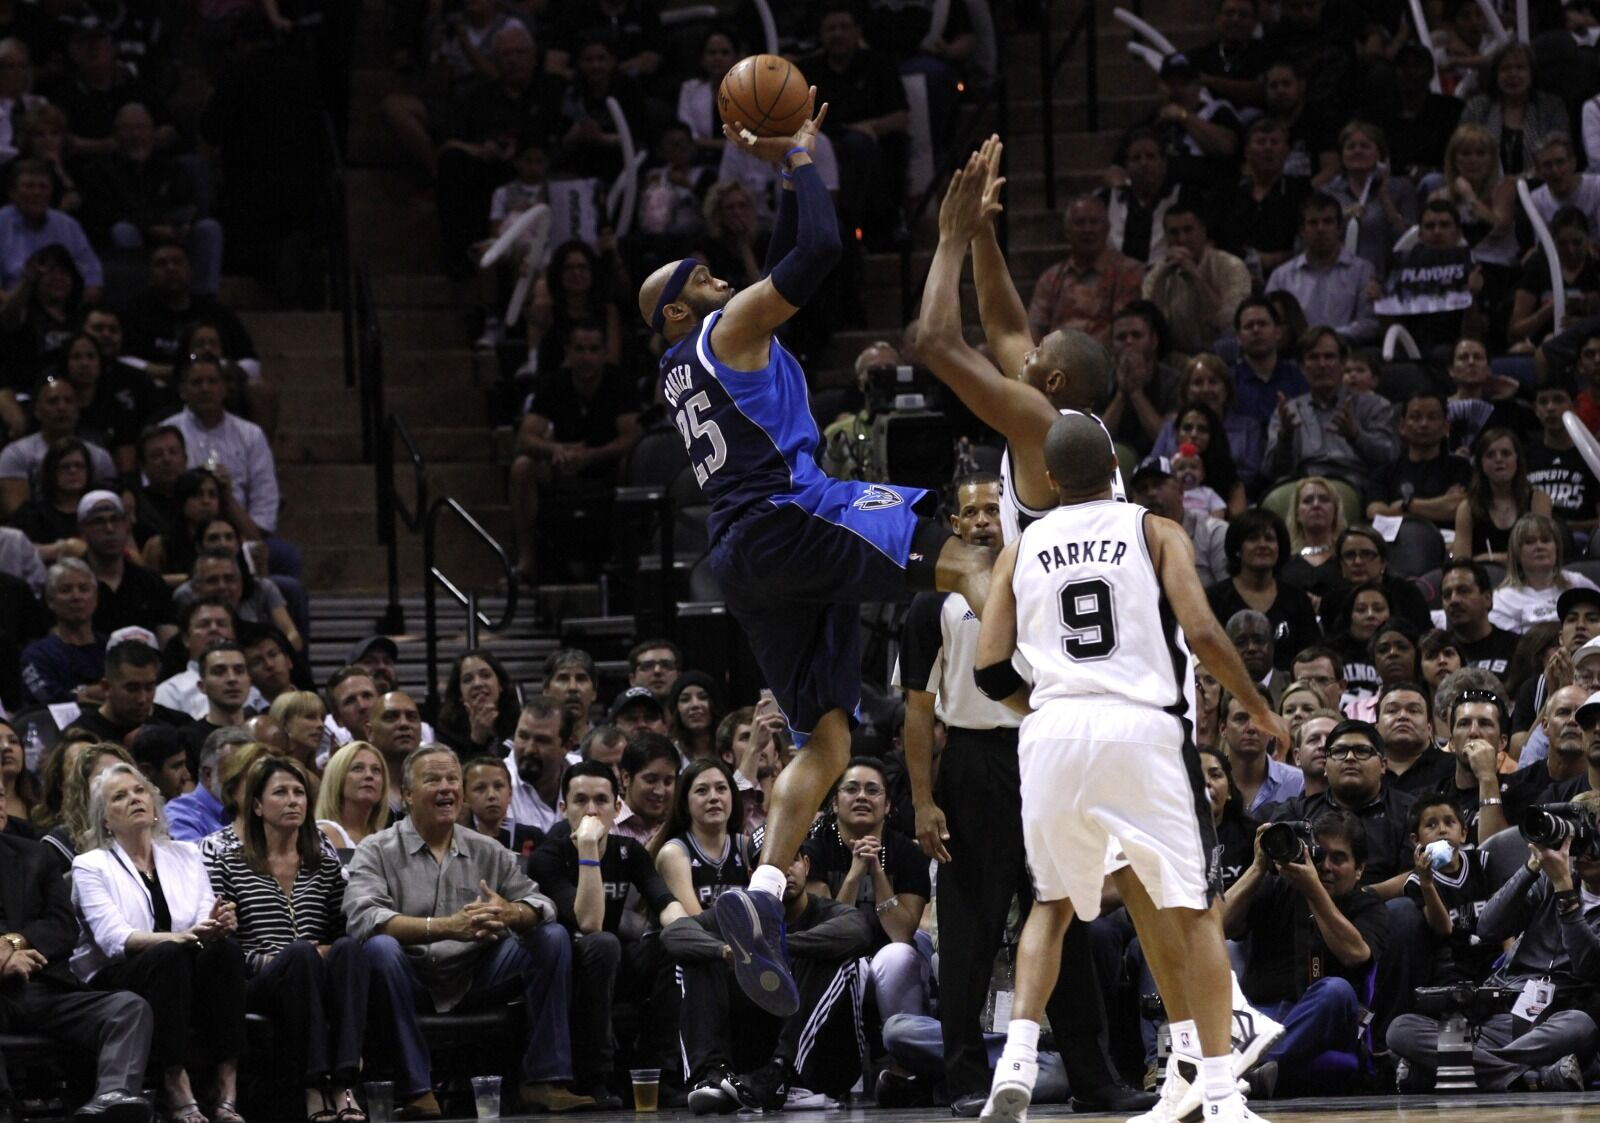 488463025-dallas-mavericks-v-san-antonio-spurs-game-five.jpg